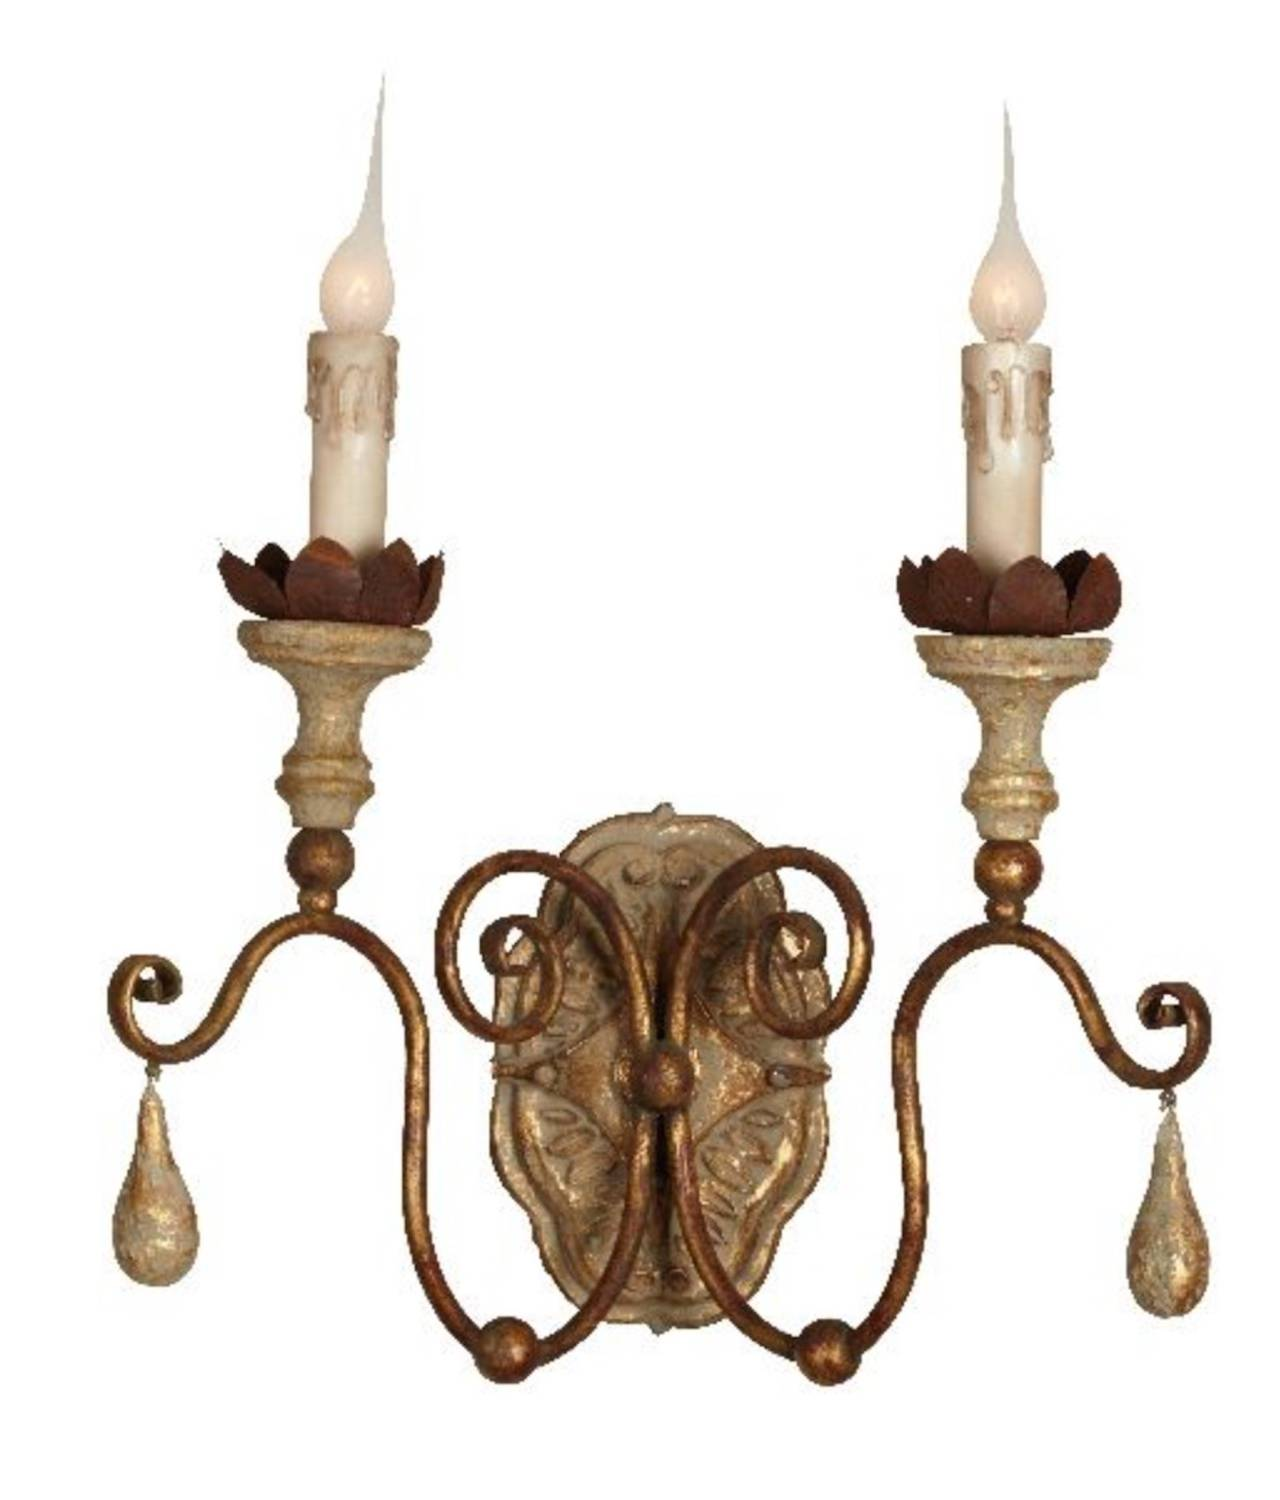 Six two-arm Italian style carved wood and tole sconces with lovely worn patina. Priced per sconce, newly wired, ready for installation.